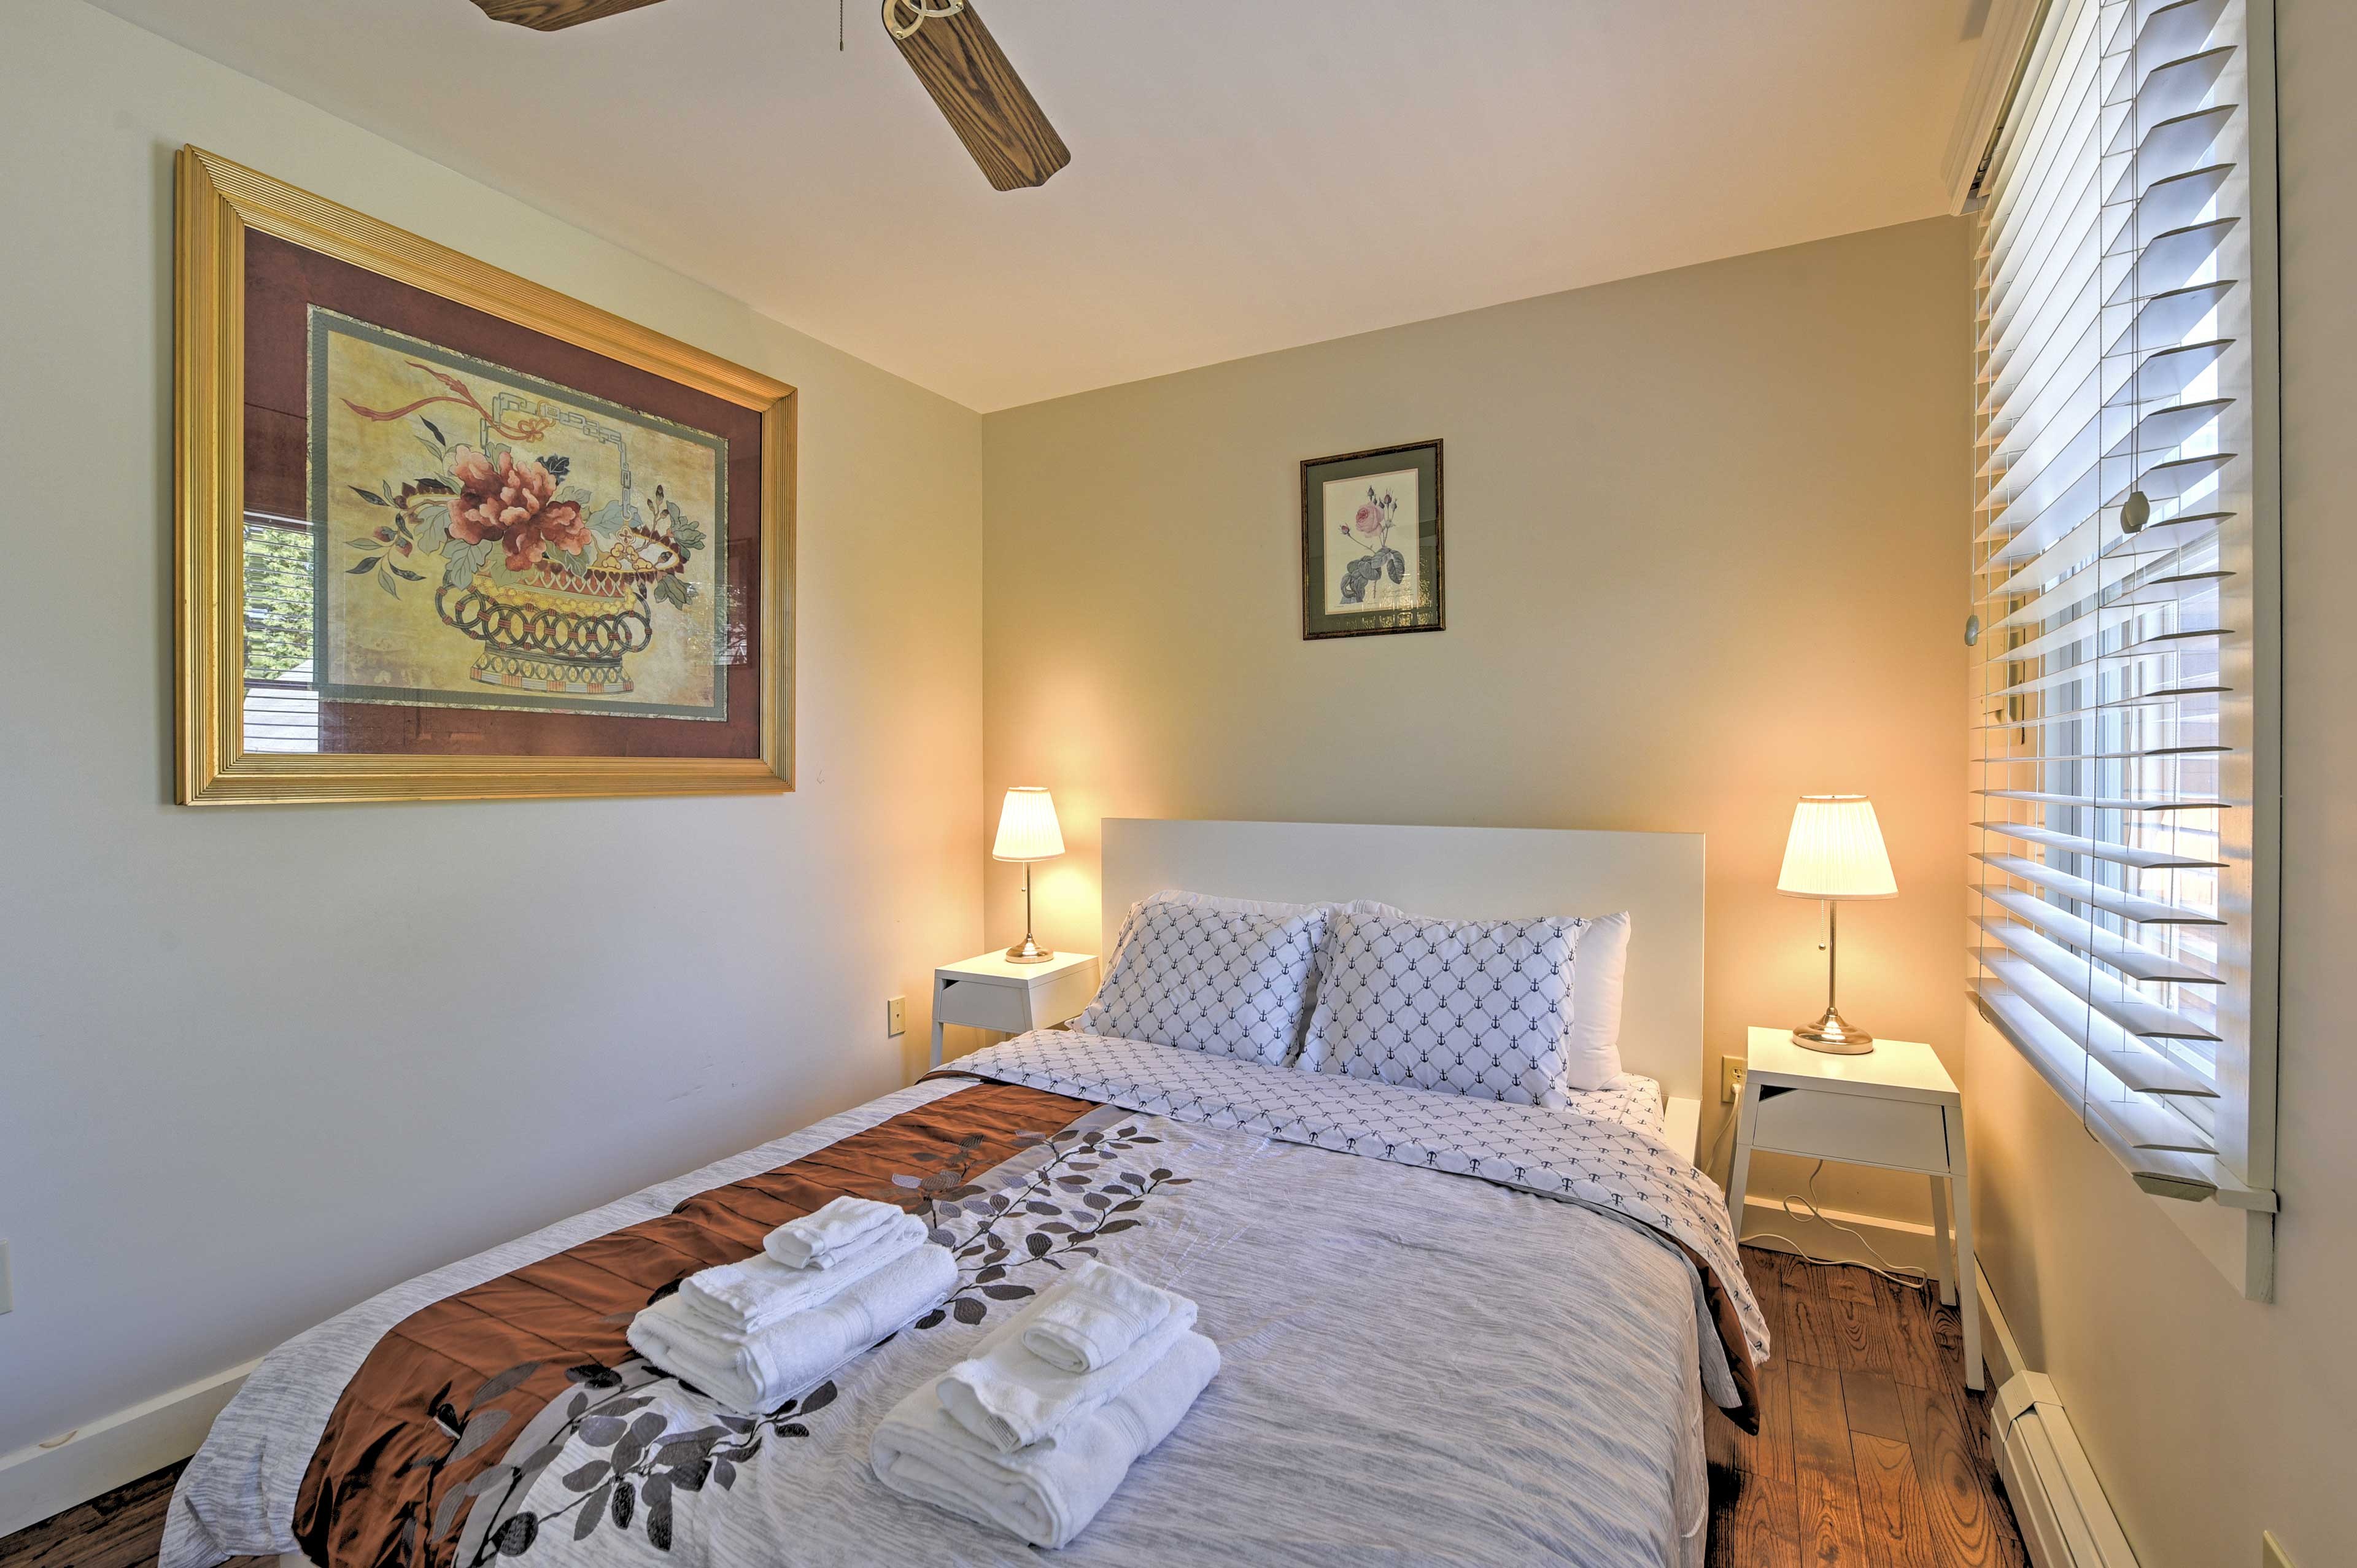 Each bedroom features a plush queen-sized bed.